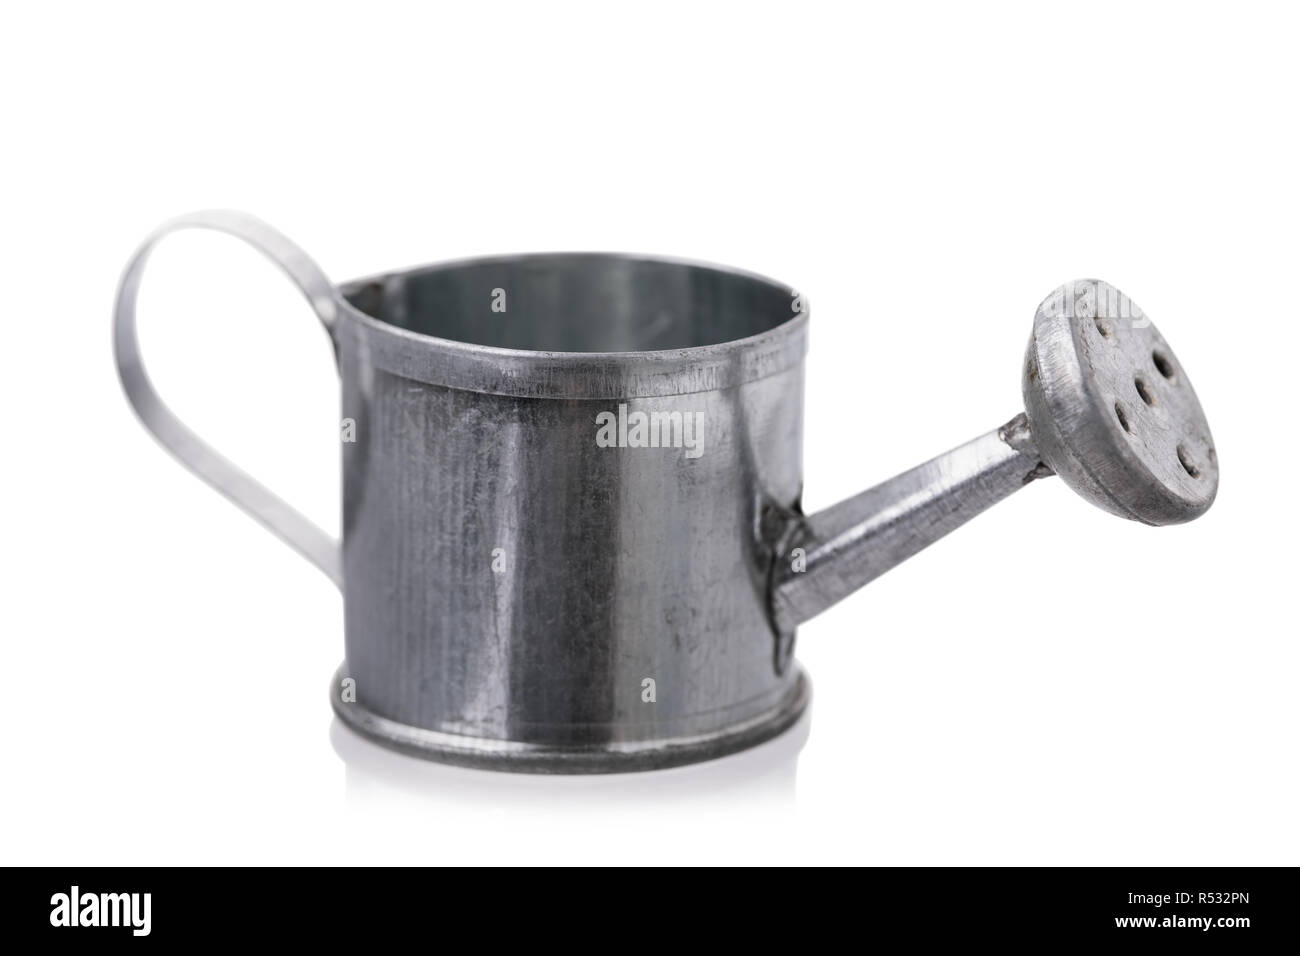 Metal watering can isolated on a white background - Stock Image